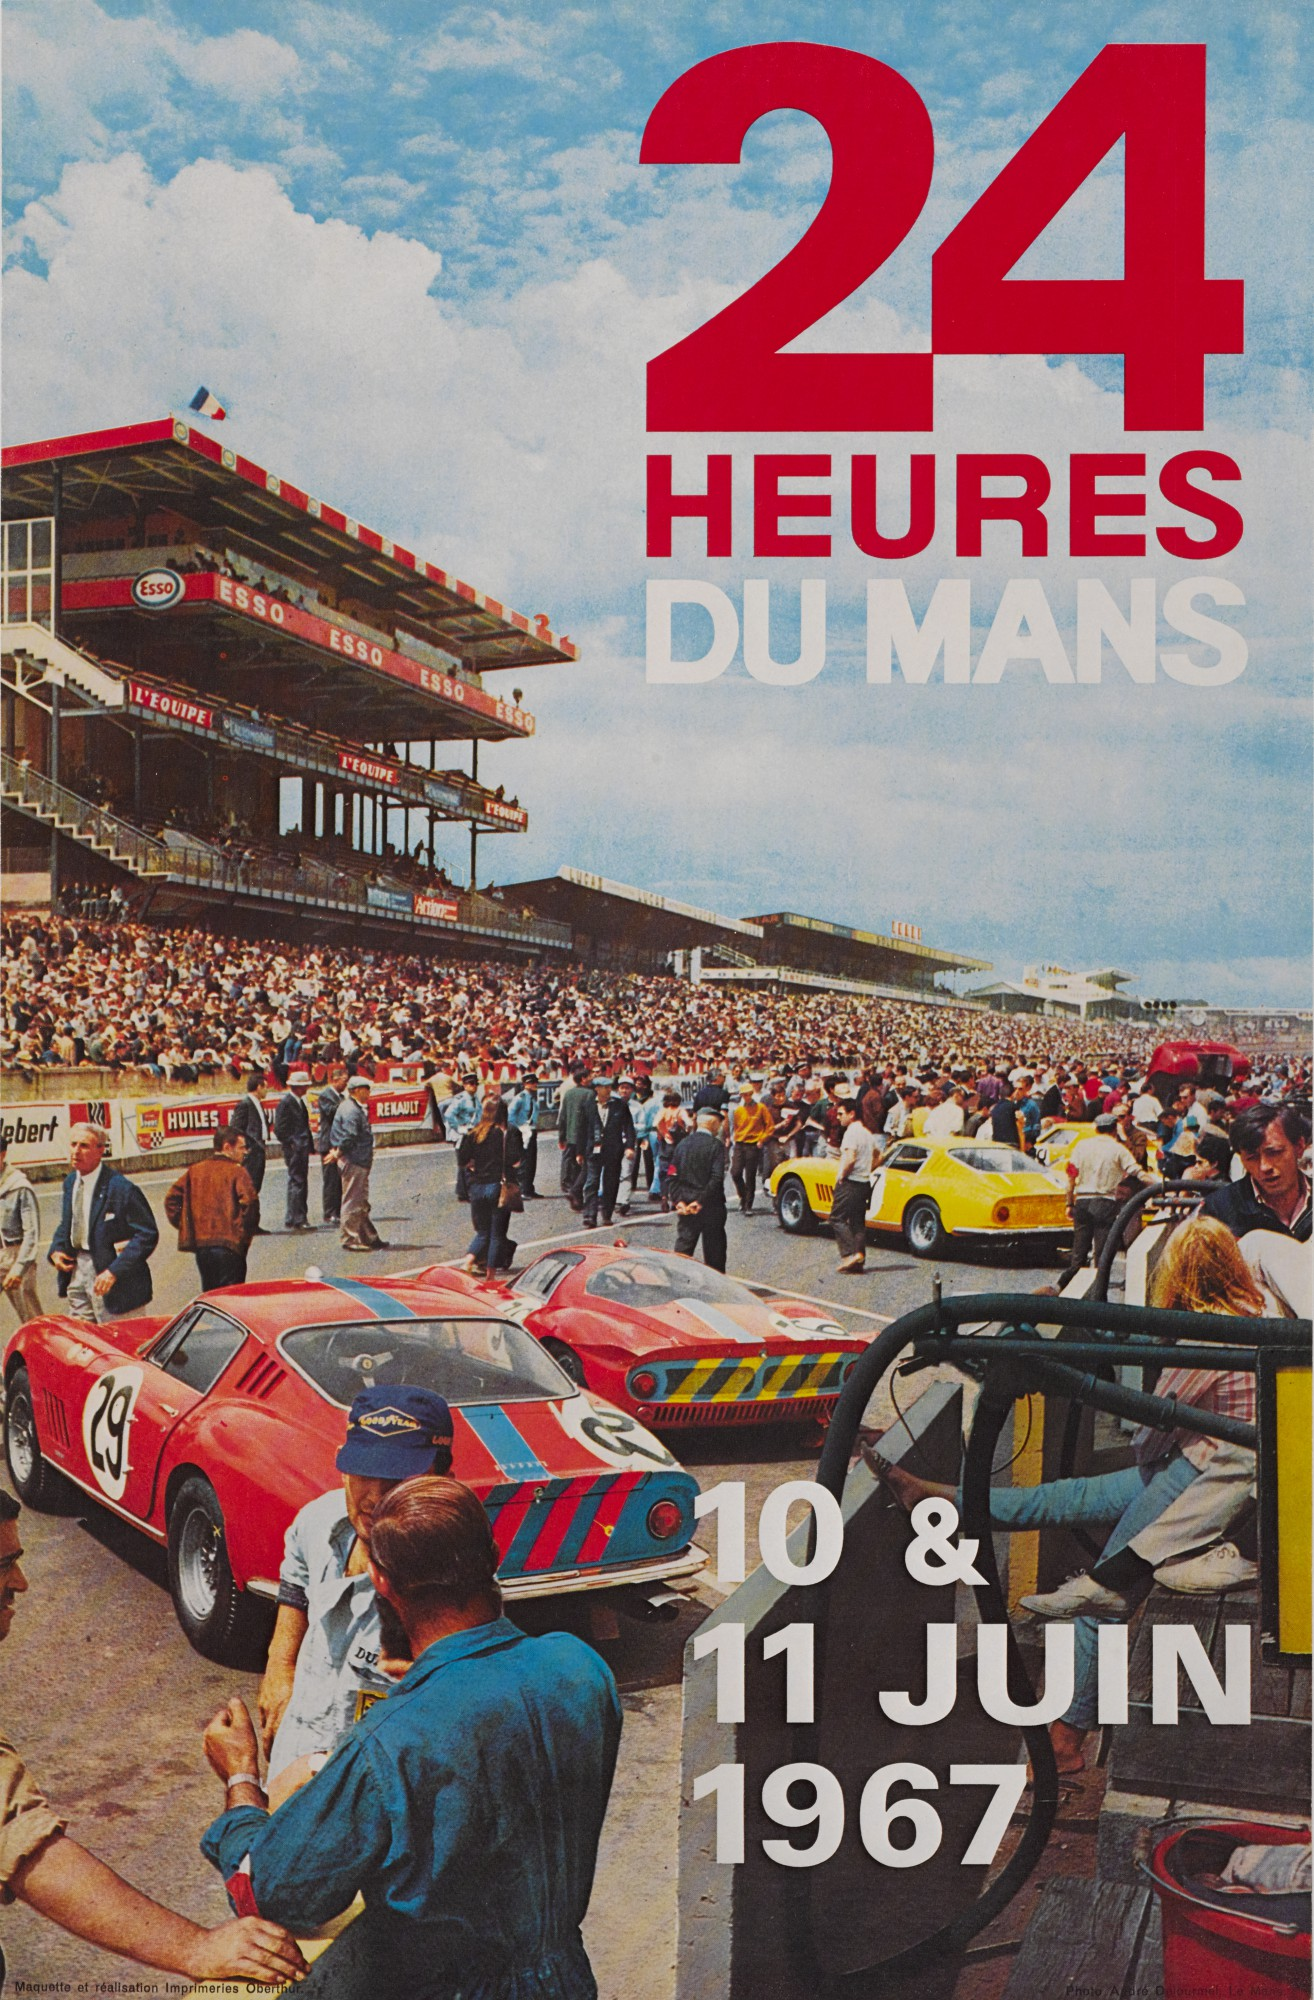 24 HEURES DU MANS (1967) POSTER, FRENCH